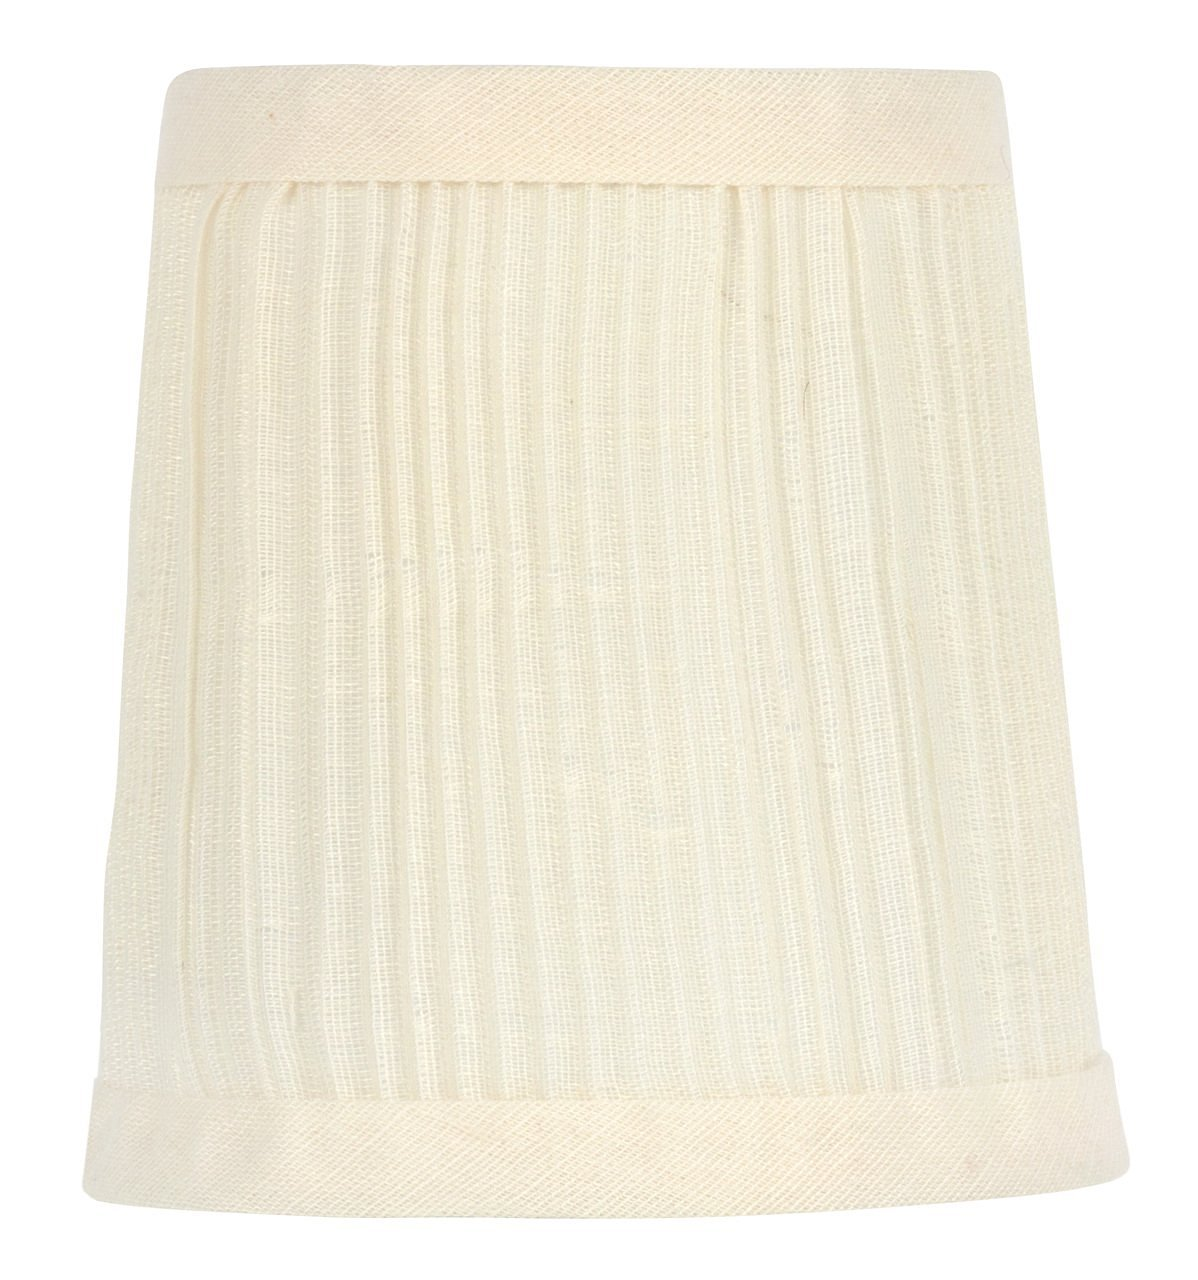 Upgradelights 4 Inch Pleated Drum Chandelier Lamp Shade Clip in Eggshell (set of two) 3x4x4